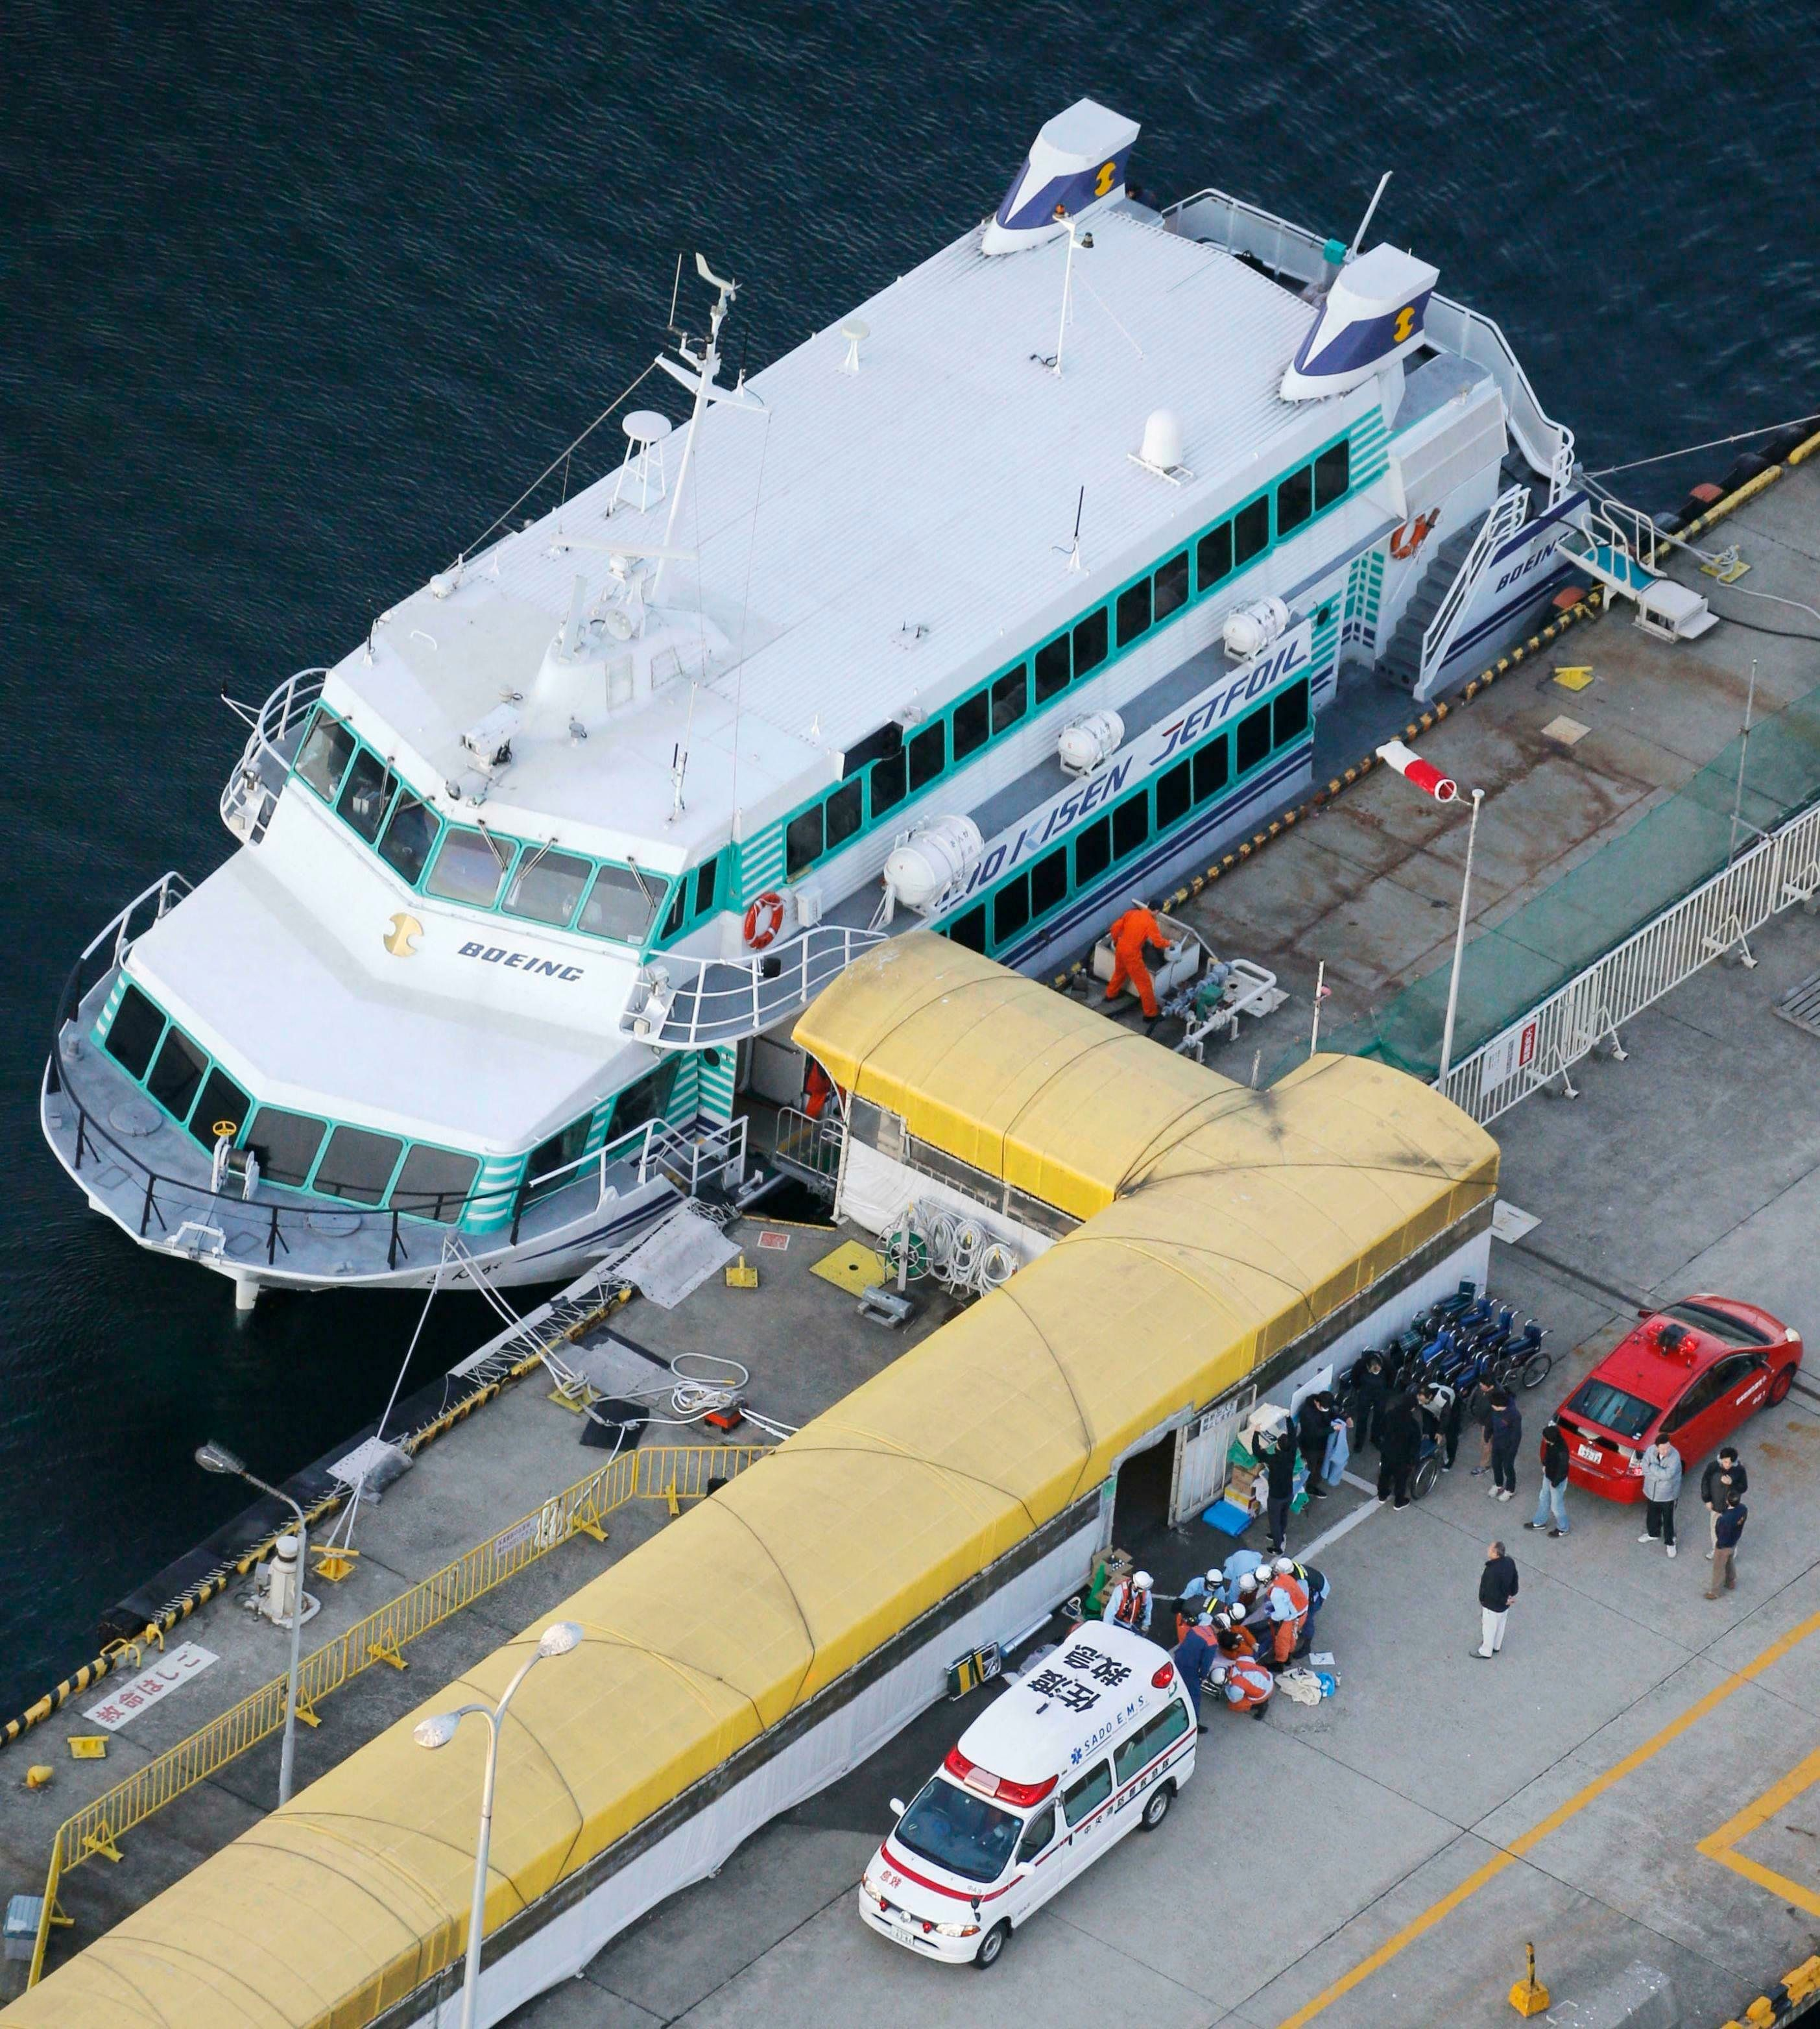 In this Saturday, March 9, 2019, photo, firefighters, bottom, prepare to taken injured passengers to a hospital at a port in Sado city, Niigate prefecture.  A ferry collided with what apparently was a marine animal off a Japanese island on Saturday, injuring more than 80 people, local media reported. The accident happened just after noon off Sado Island, Kyodo News agency reported, citing Japan's coast guard. (Kyodo News via AP)